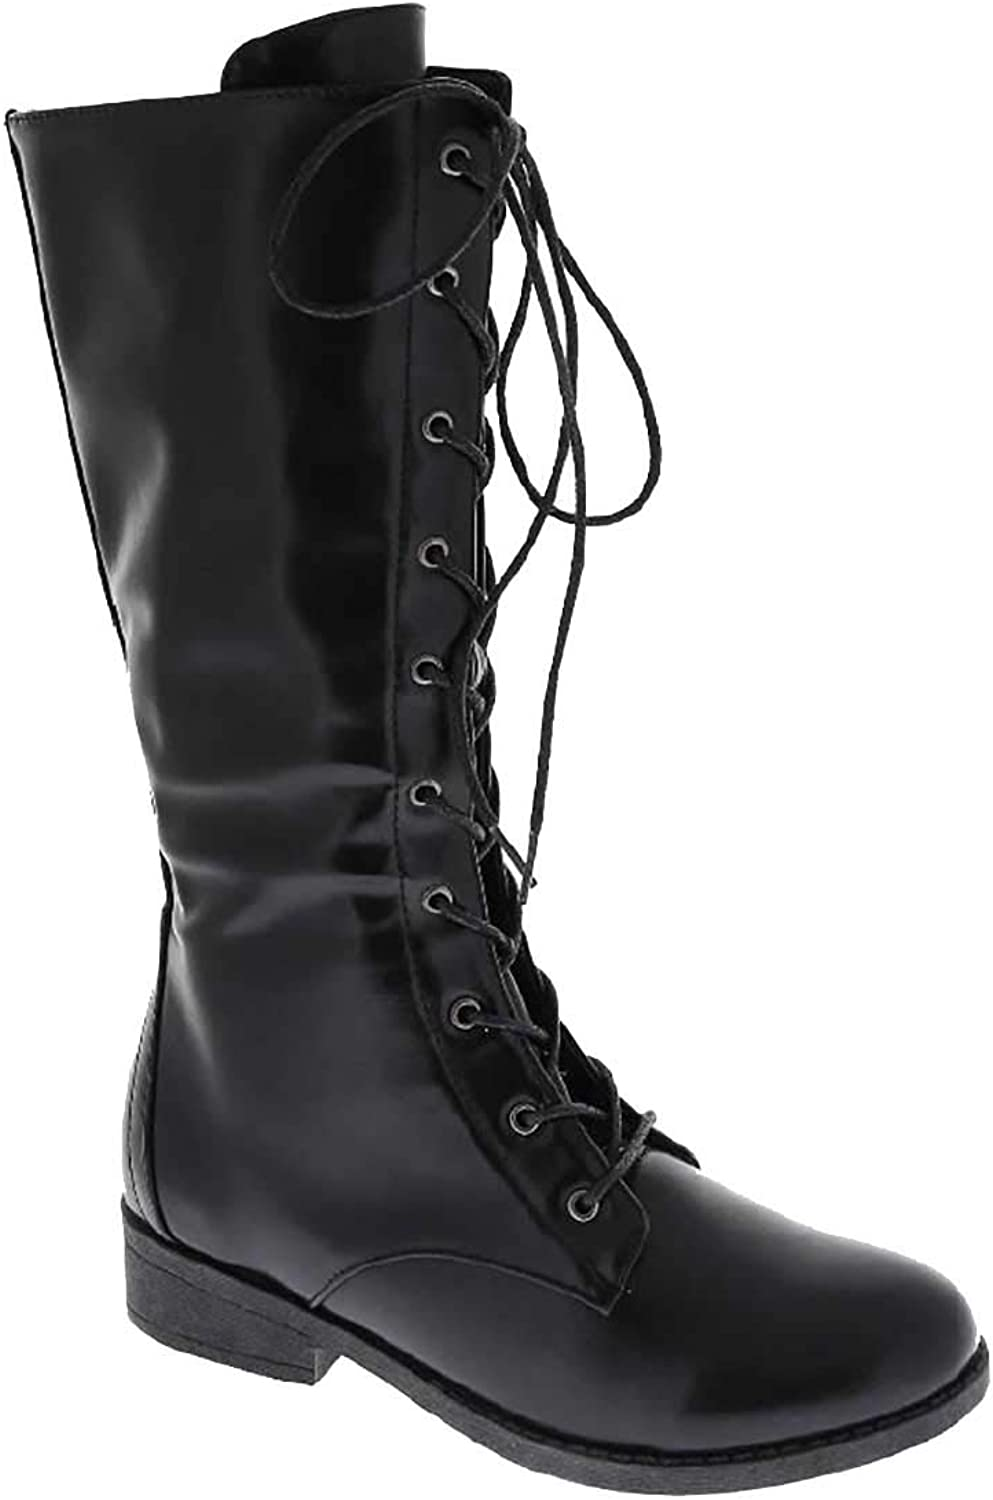 Fourever Funky Lace up Military Style Combat Boots Women's Boots Vegan Leather Below The Knee Black